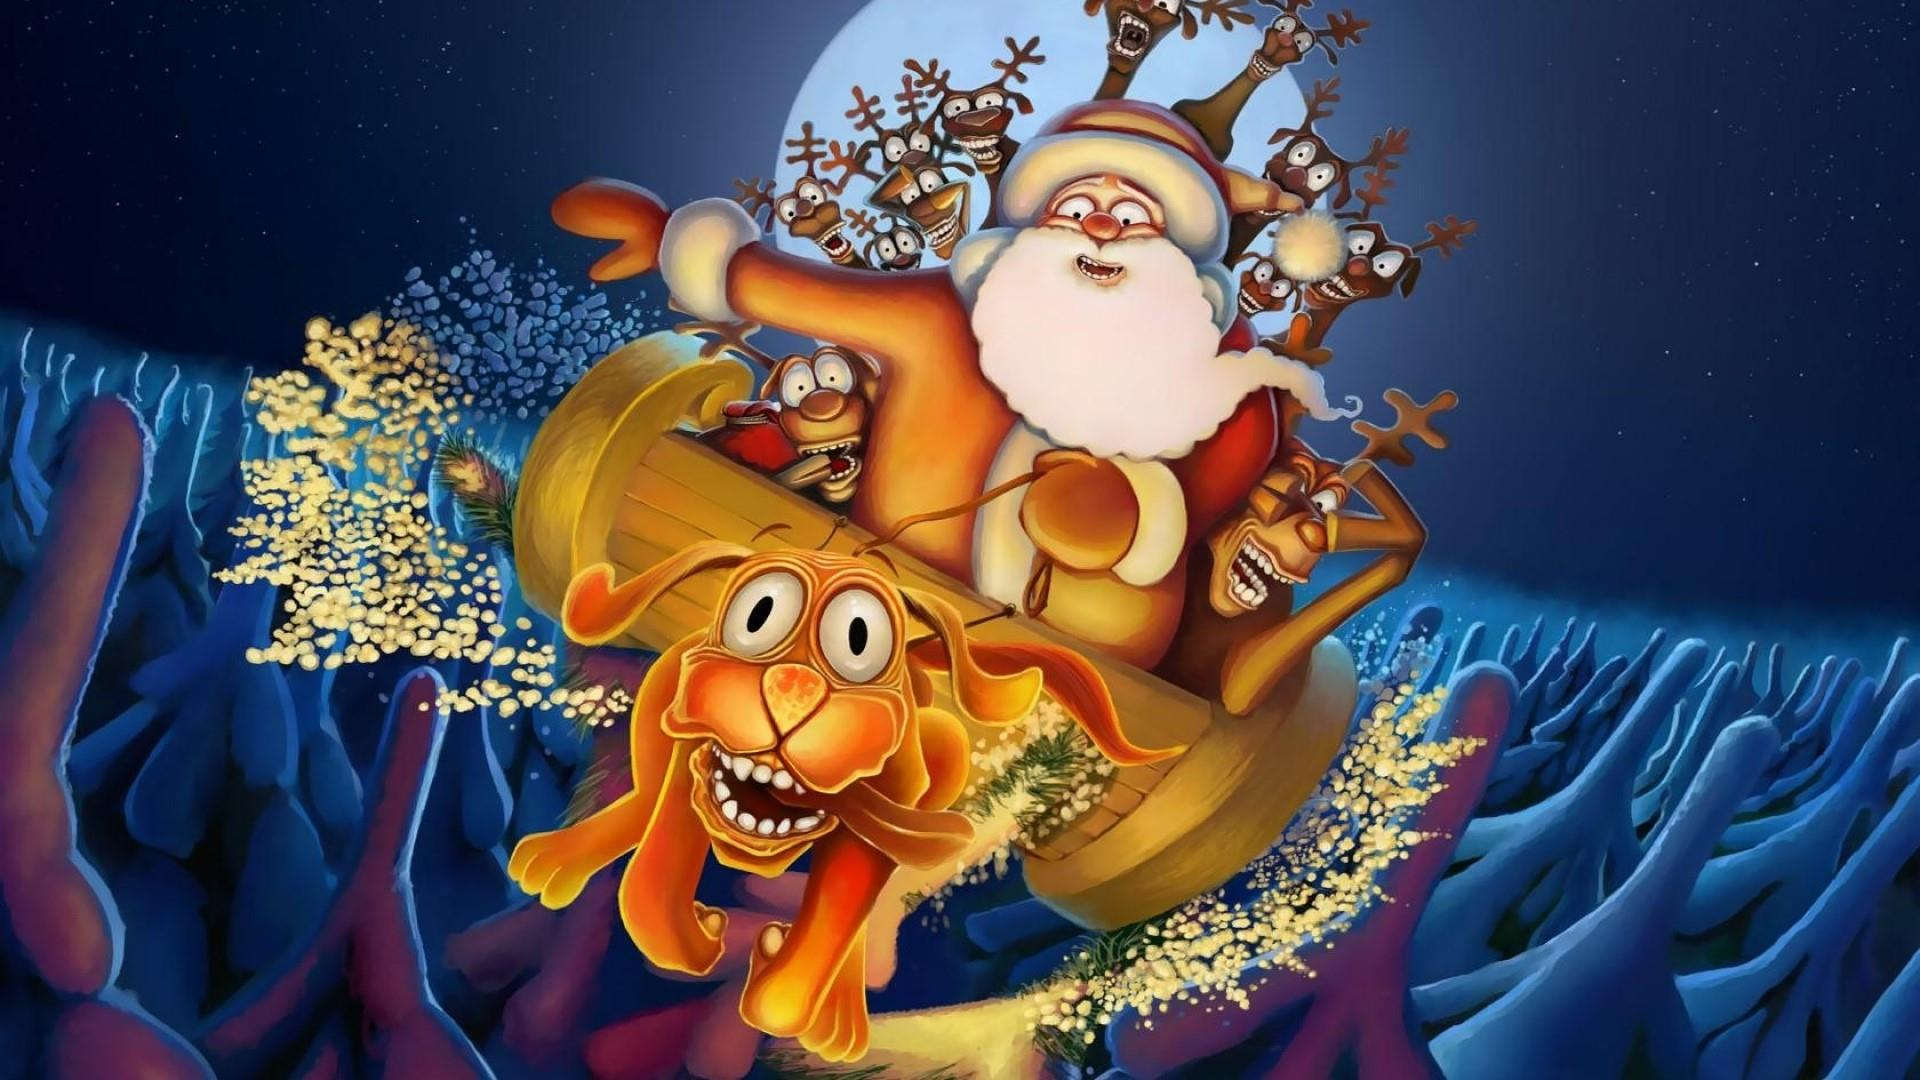 Santa Claus 3d Live Wallpaper And Screensaver